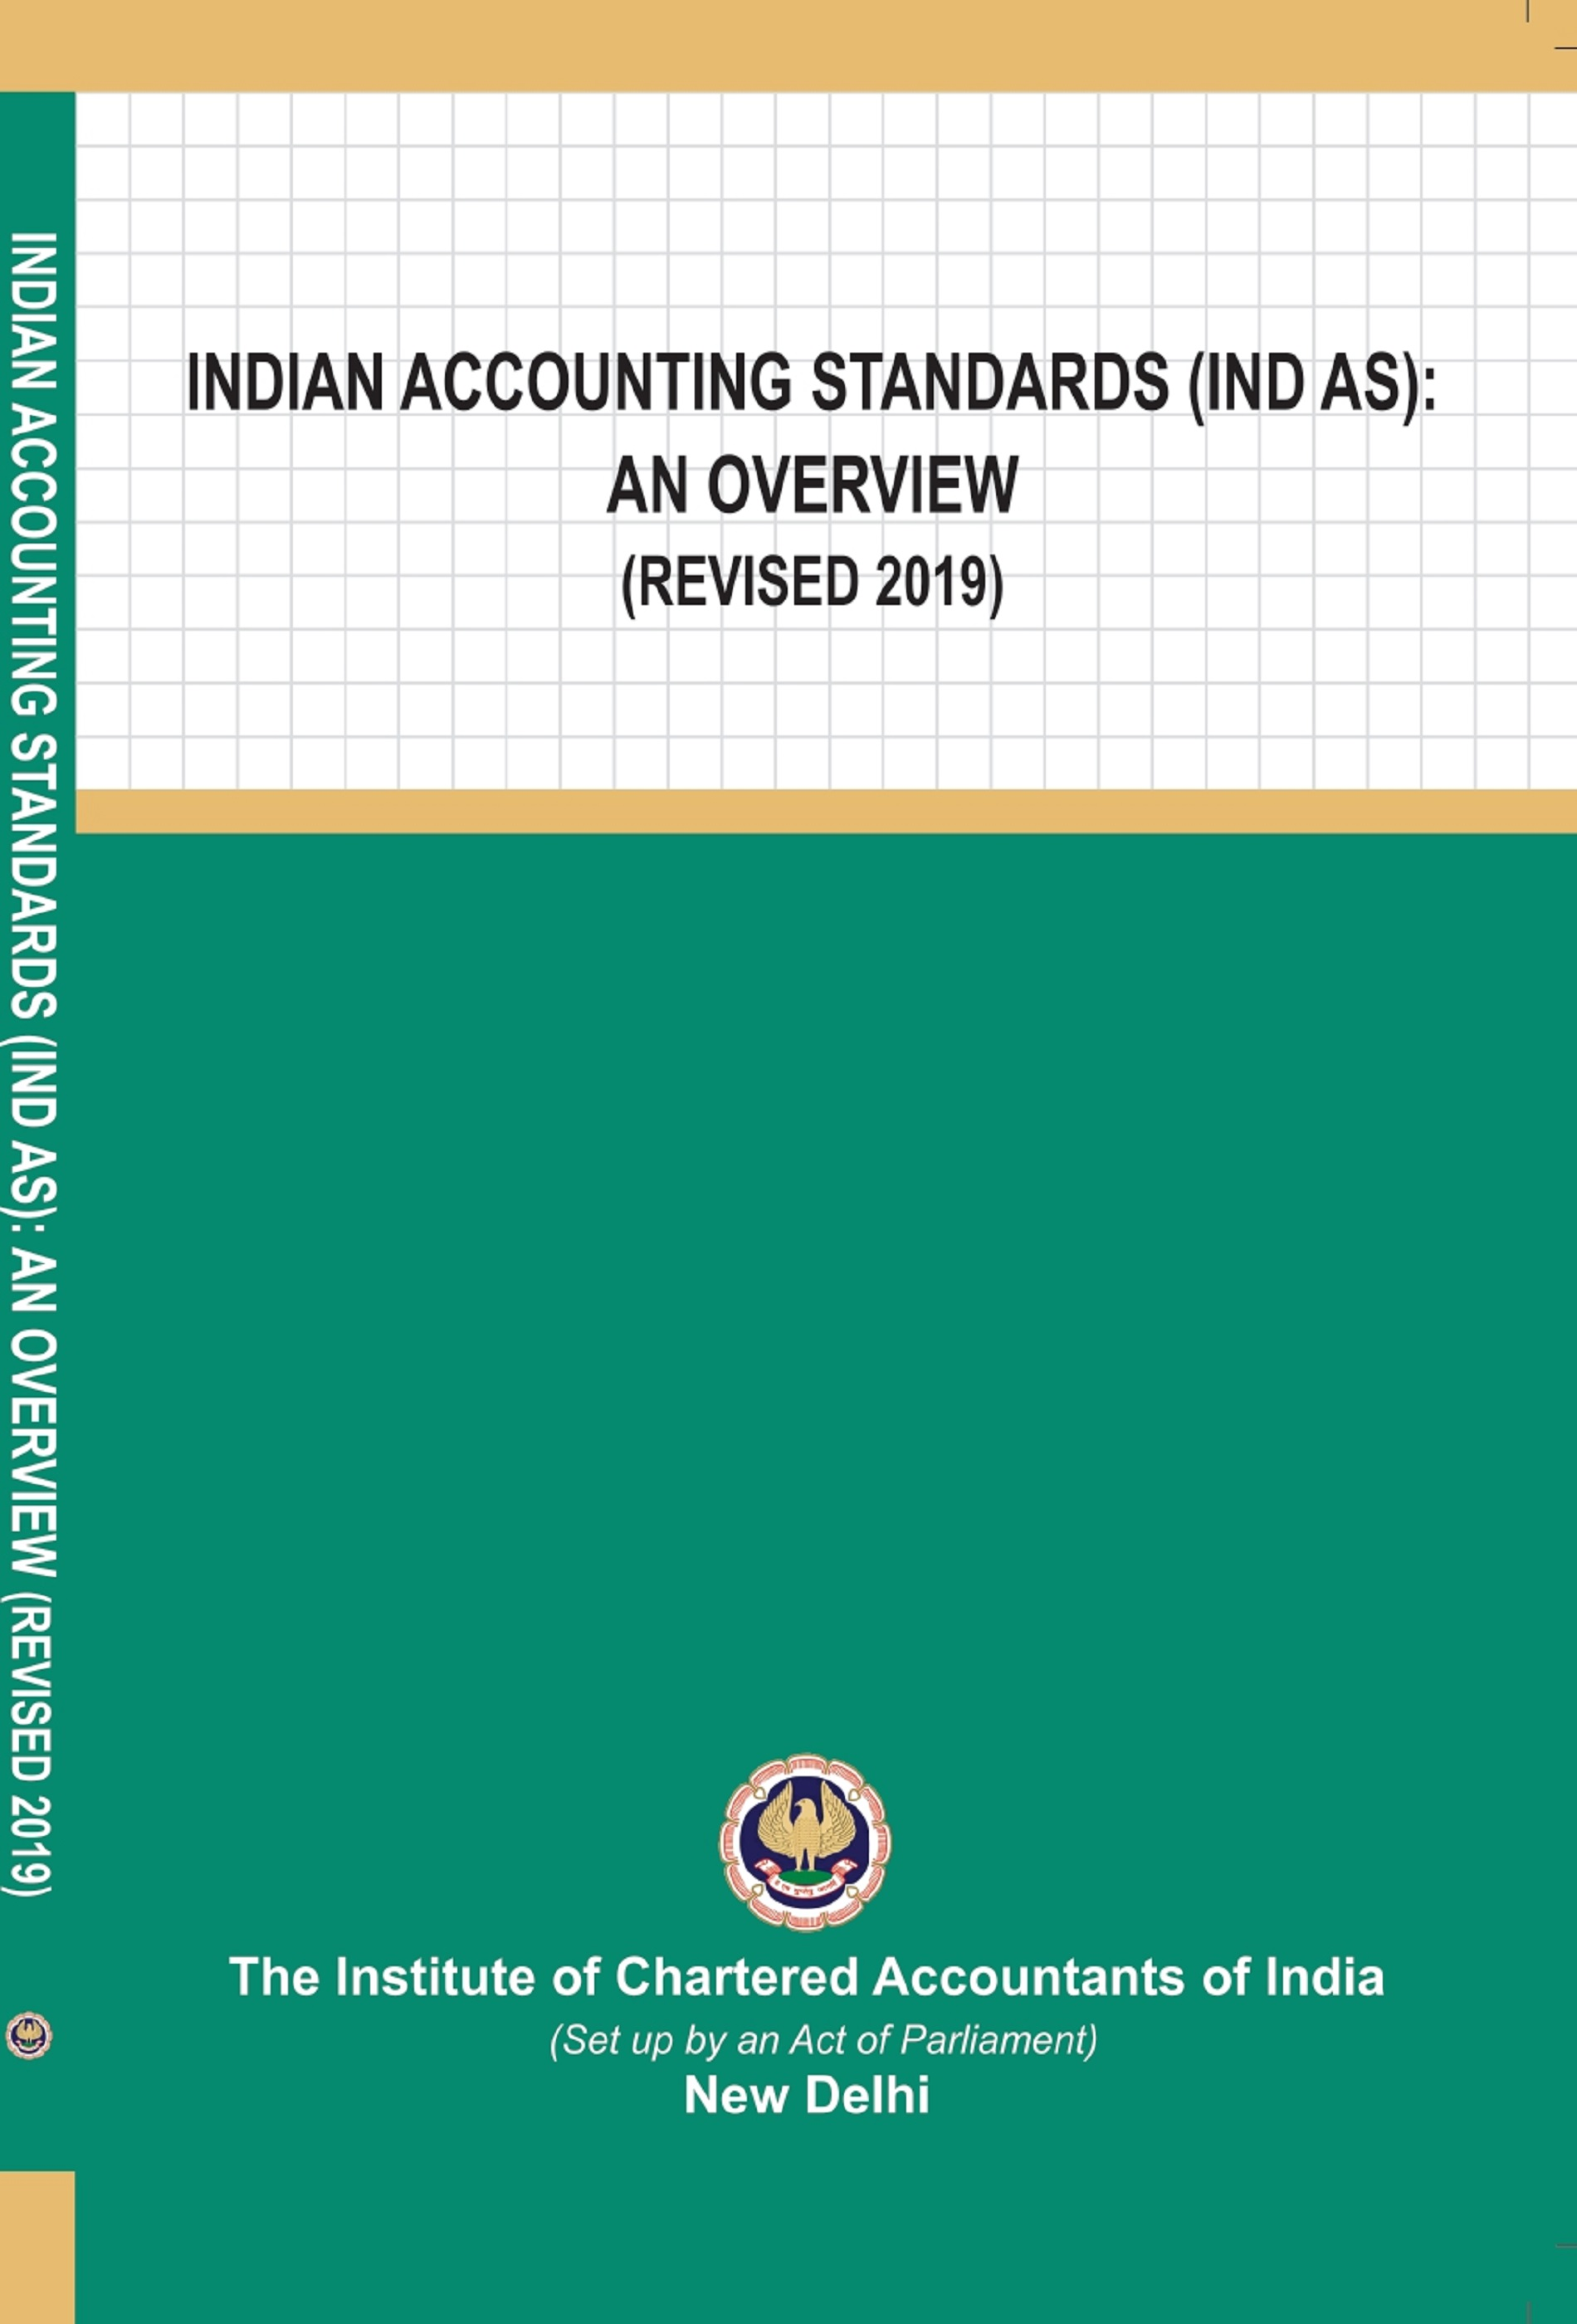 Indian Accounting Standards (Ind AS): An Overview (Revised 2019)